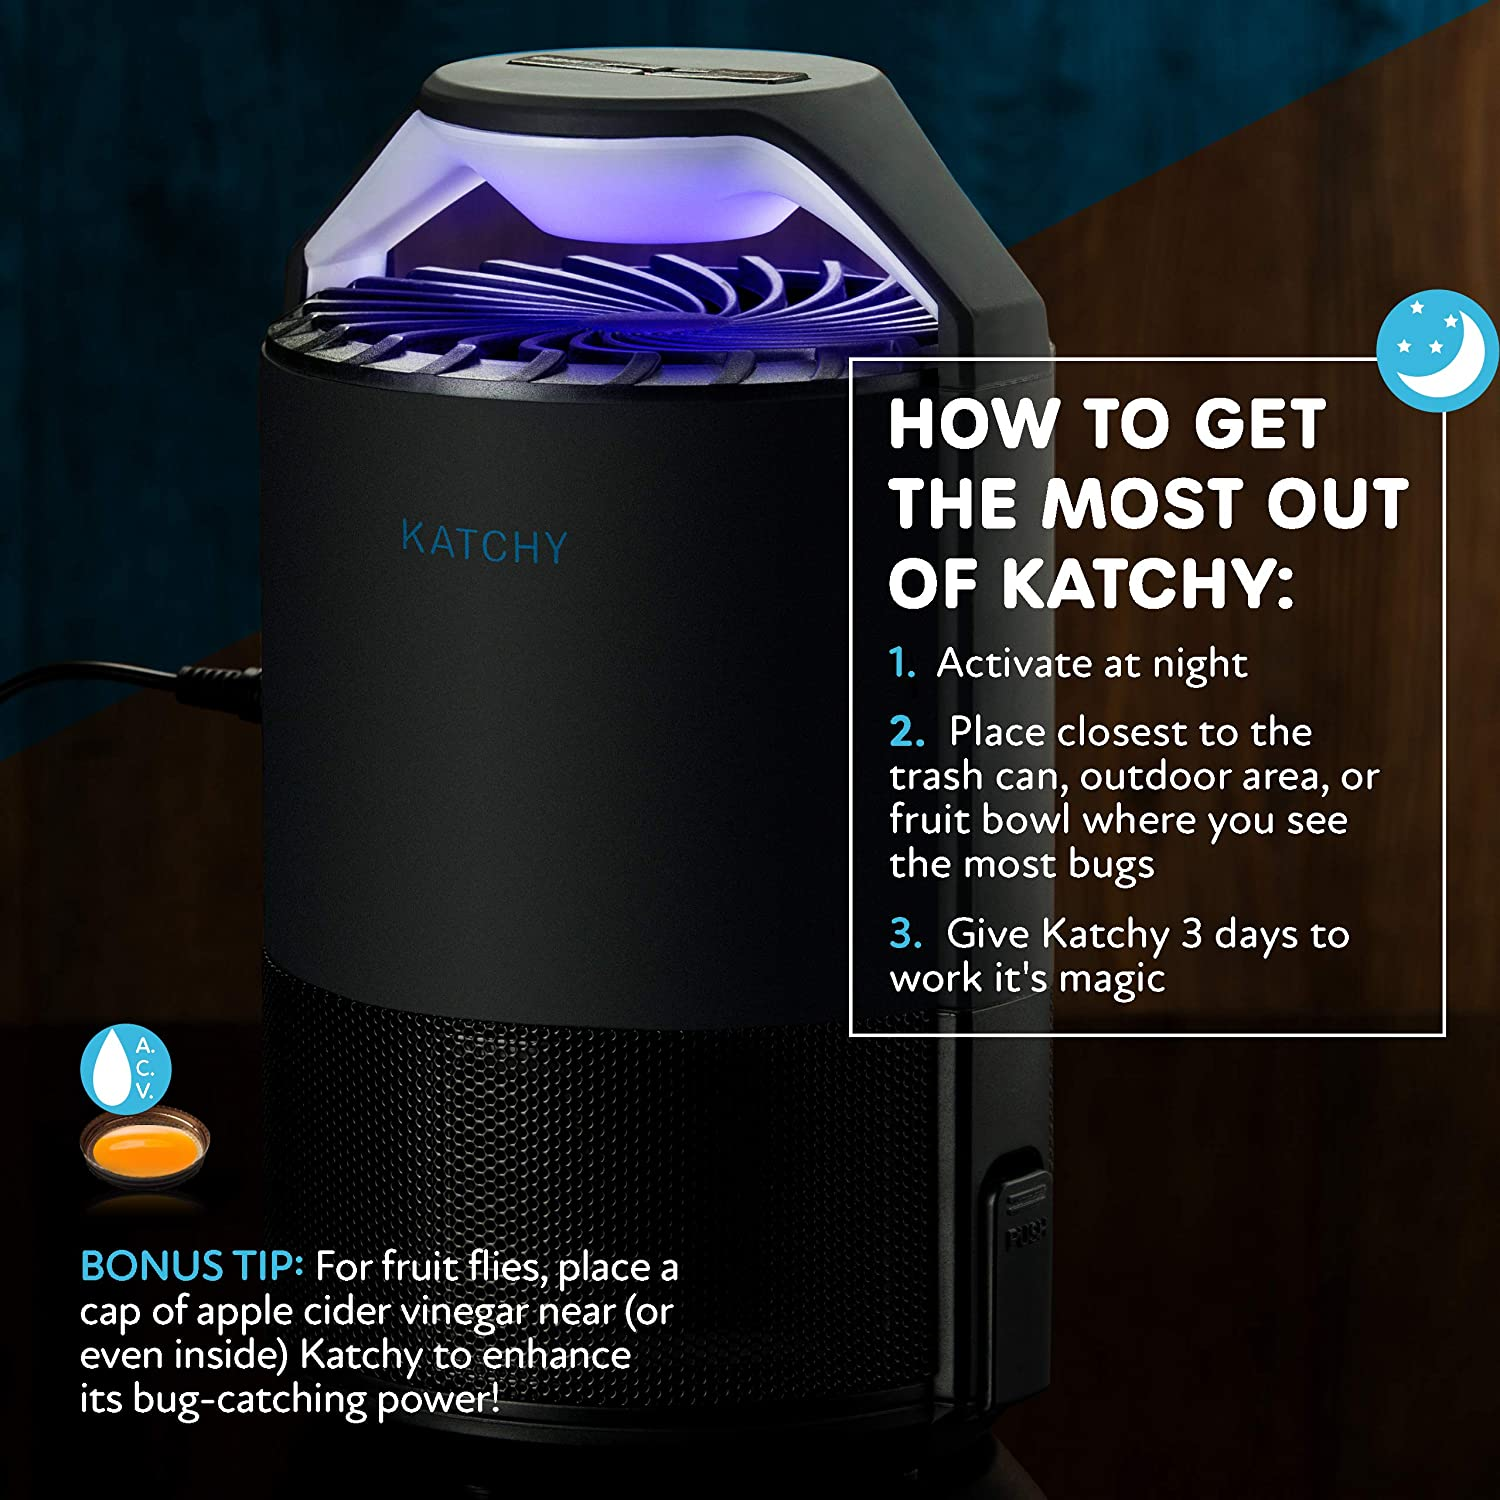 Indoor Insect Trap: Bug, Fruit Fly, Gnat, Mosquito Killer - UV Light, Fan, Sticky Glue Boards Trap Even The Tiniest Flying Bugs - No Zapper - Child Safe, Non-Toxic (Black)